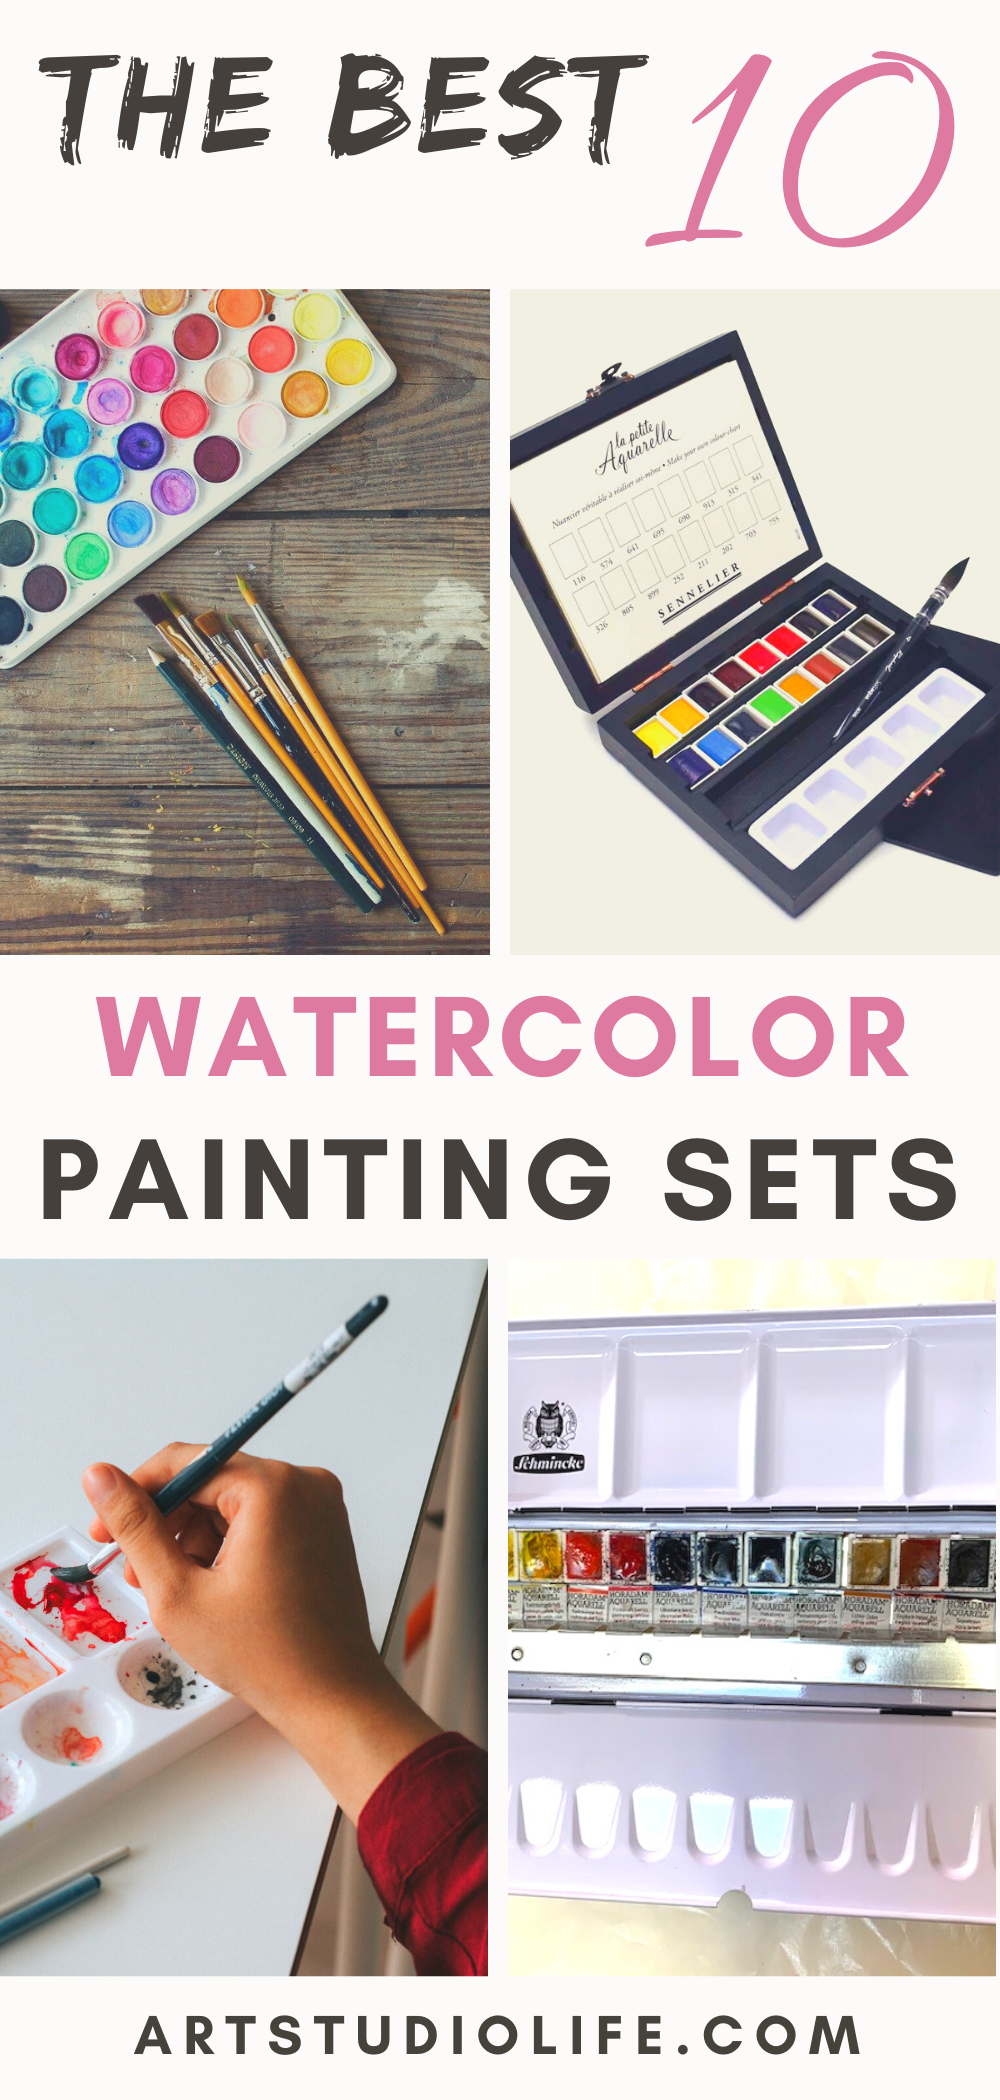 Which Are The Best Top 10 Watercolor Paint Sets In 2020 Watercolor Branding Watercolor Paint Set Paint Sets